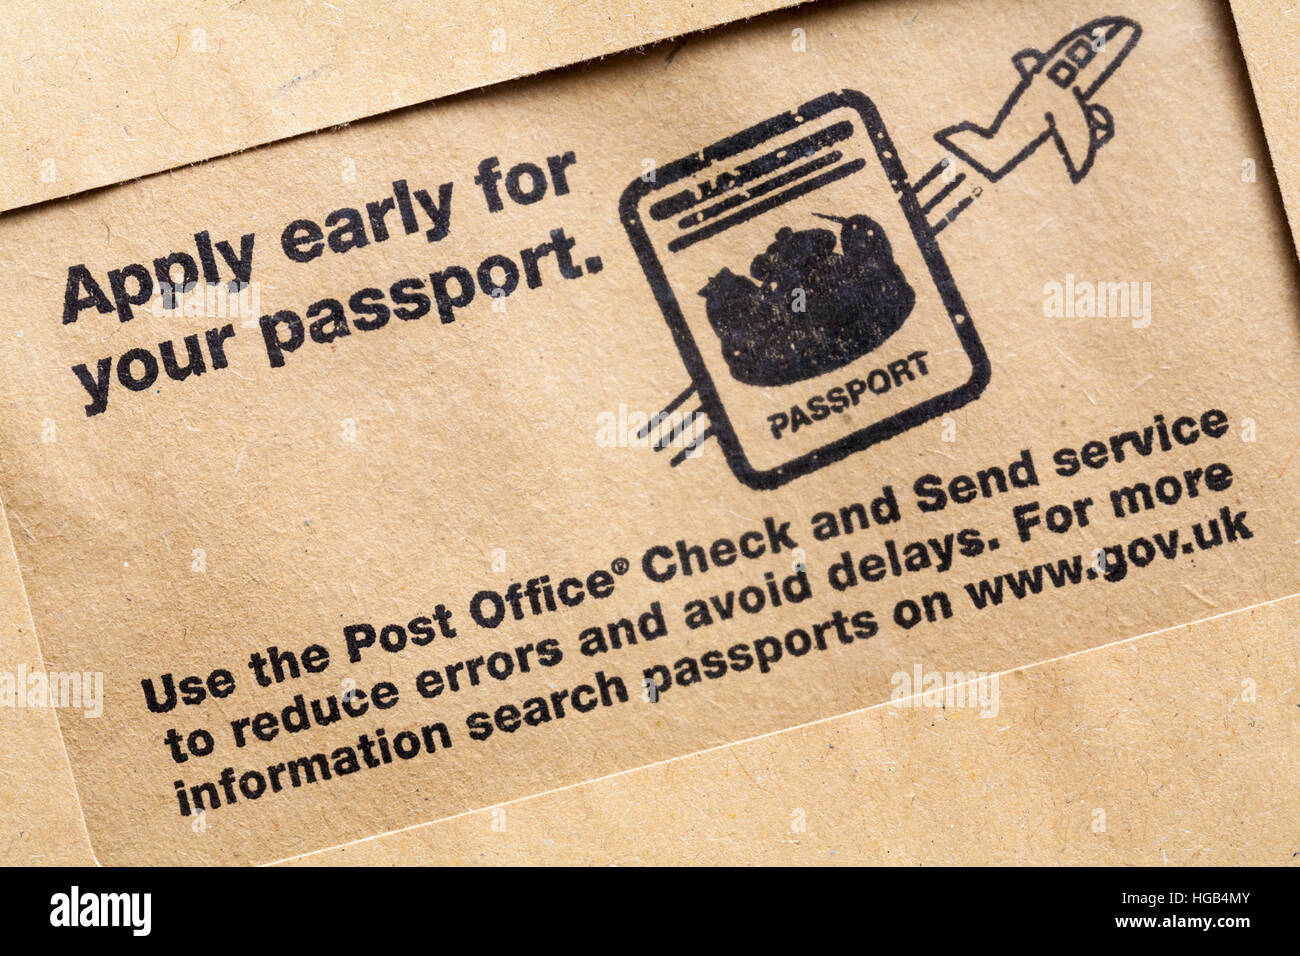 Apply early for your passport Use the Post Office Check and Send service to reduce errors and avoid delays - info - Stock Image